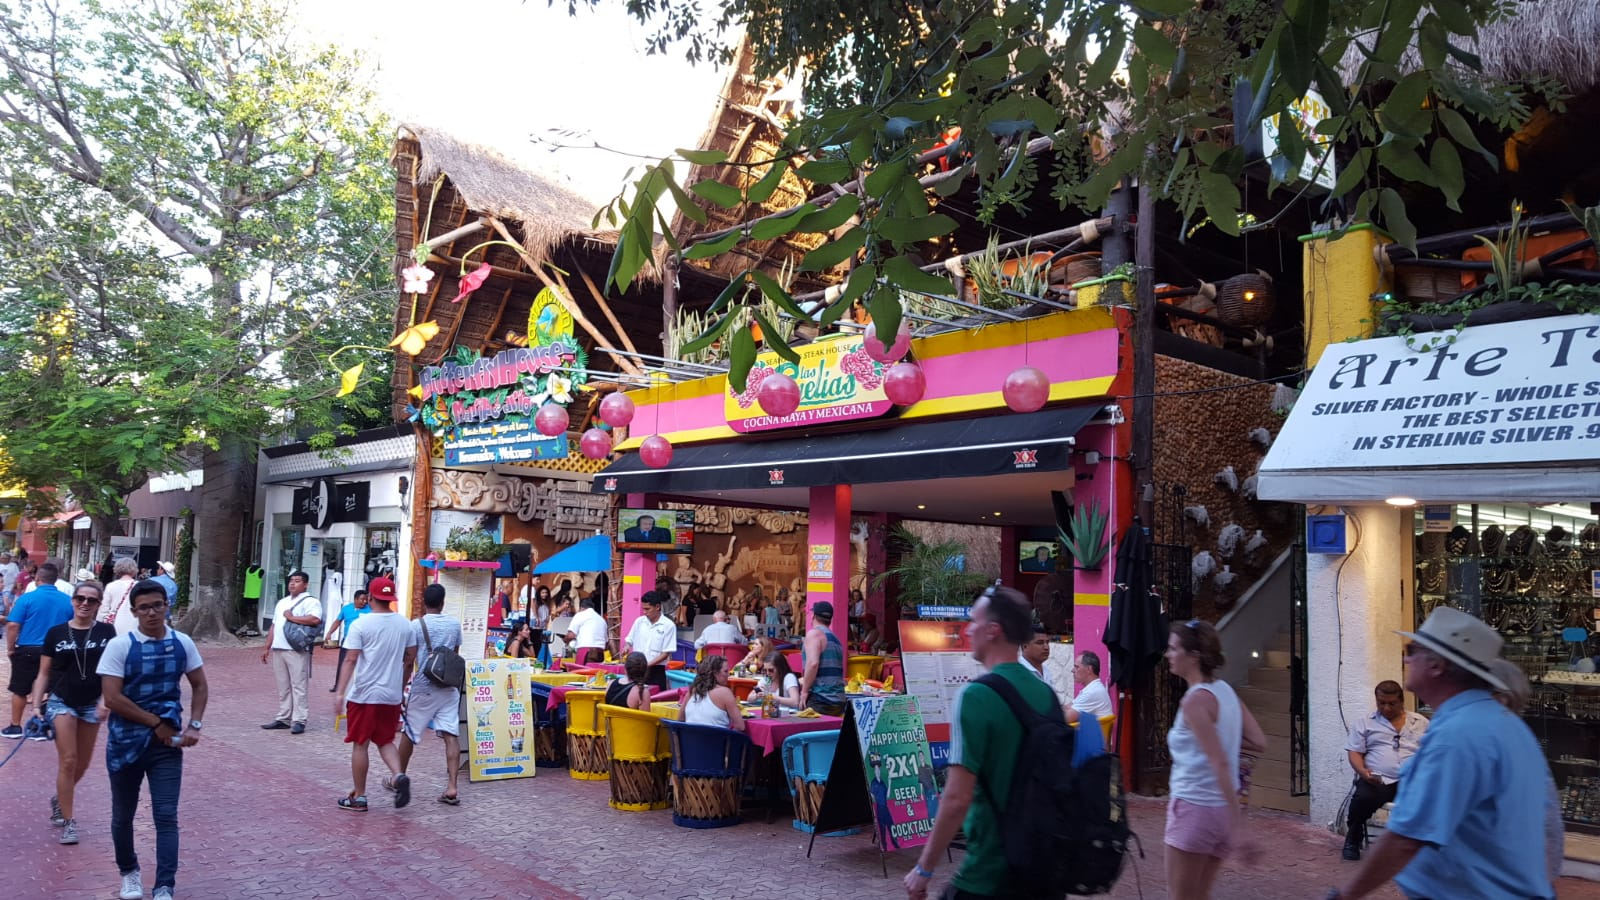 Playa del Carmen Experiences Surge in Tourism